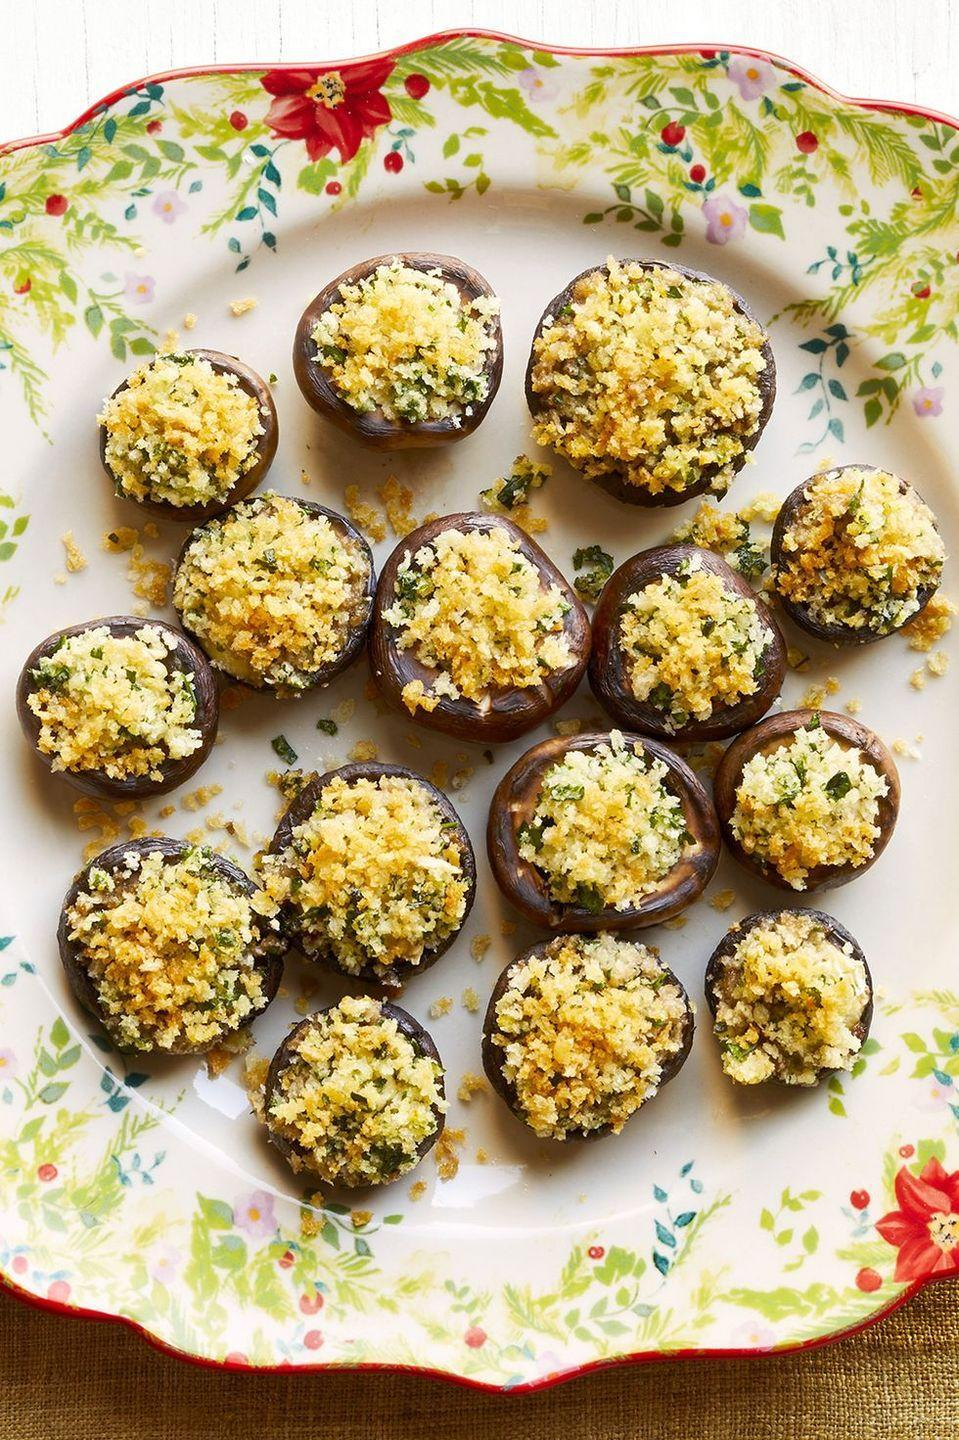 """<p>Stuffed mushrooms deserve to be at every festivity. These bites are stuffed with a hunk of brie, making them perfect for an indulgent Super Bowl snack.</p><p><strong><a href=""""https://www.thepioneerwoman.com/food-cooking/recipes/a34208011/crispy-brie-stuffed-mushrooms-recipe/"""" rel=""""nofollow noopener"""" target=""""_blank"""" data-ylk=""""slk:Get the recipe."""" class=""""link rapid-noclick-resp"""">Get the recipe.</a></strong></p><p><strong><a class=""""link rapid-noclick-resp"""" href=""""https://go.redirectingat.com?id=74968X1596630&url=https%3A%2F%2Fwww.walmart.com%2Fbrowse%2Fhome%2Fthe-pioneer-woman-cookware%2F4044_623679_6182459_9190581&sref=https%3A%2F%2Fwww.thepioneerwoman.com%2Ffood-cooking%2Fmeals-menus%2Fg35049189%2Fsuper-bowl-food-recipes%2F"""" rel=""""nofollow noopener"""" target=""""_blank"""" data-ylk=""""slk:SHOP COOKWARE"""">SHOP COOKWARE</a><br></strong></p>"""